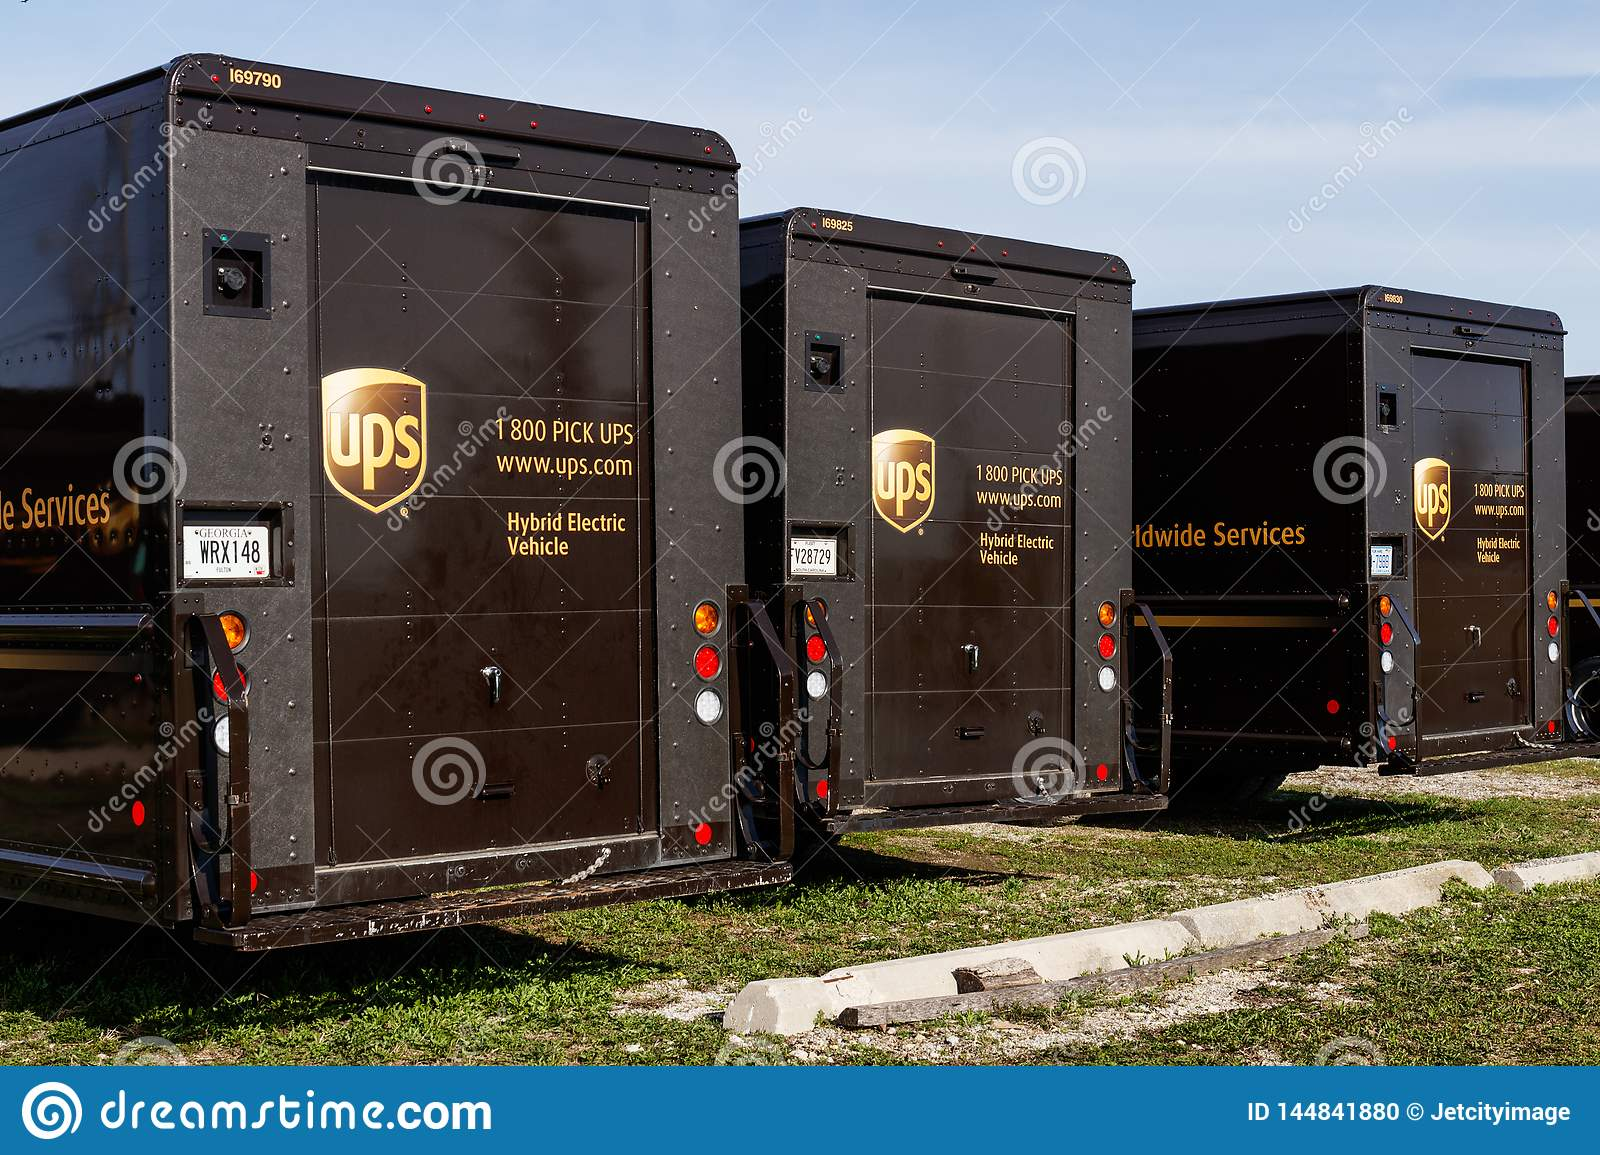 United Parcel Service hybrid electric vehicles. UPS is the World`s Largest Package Delivery Company II